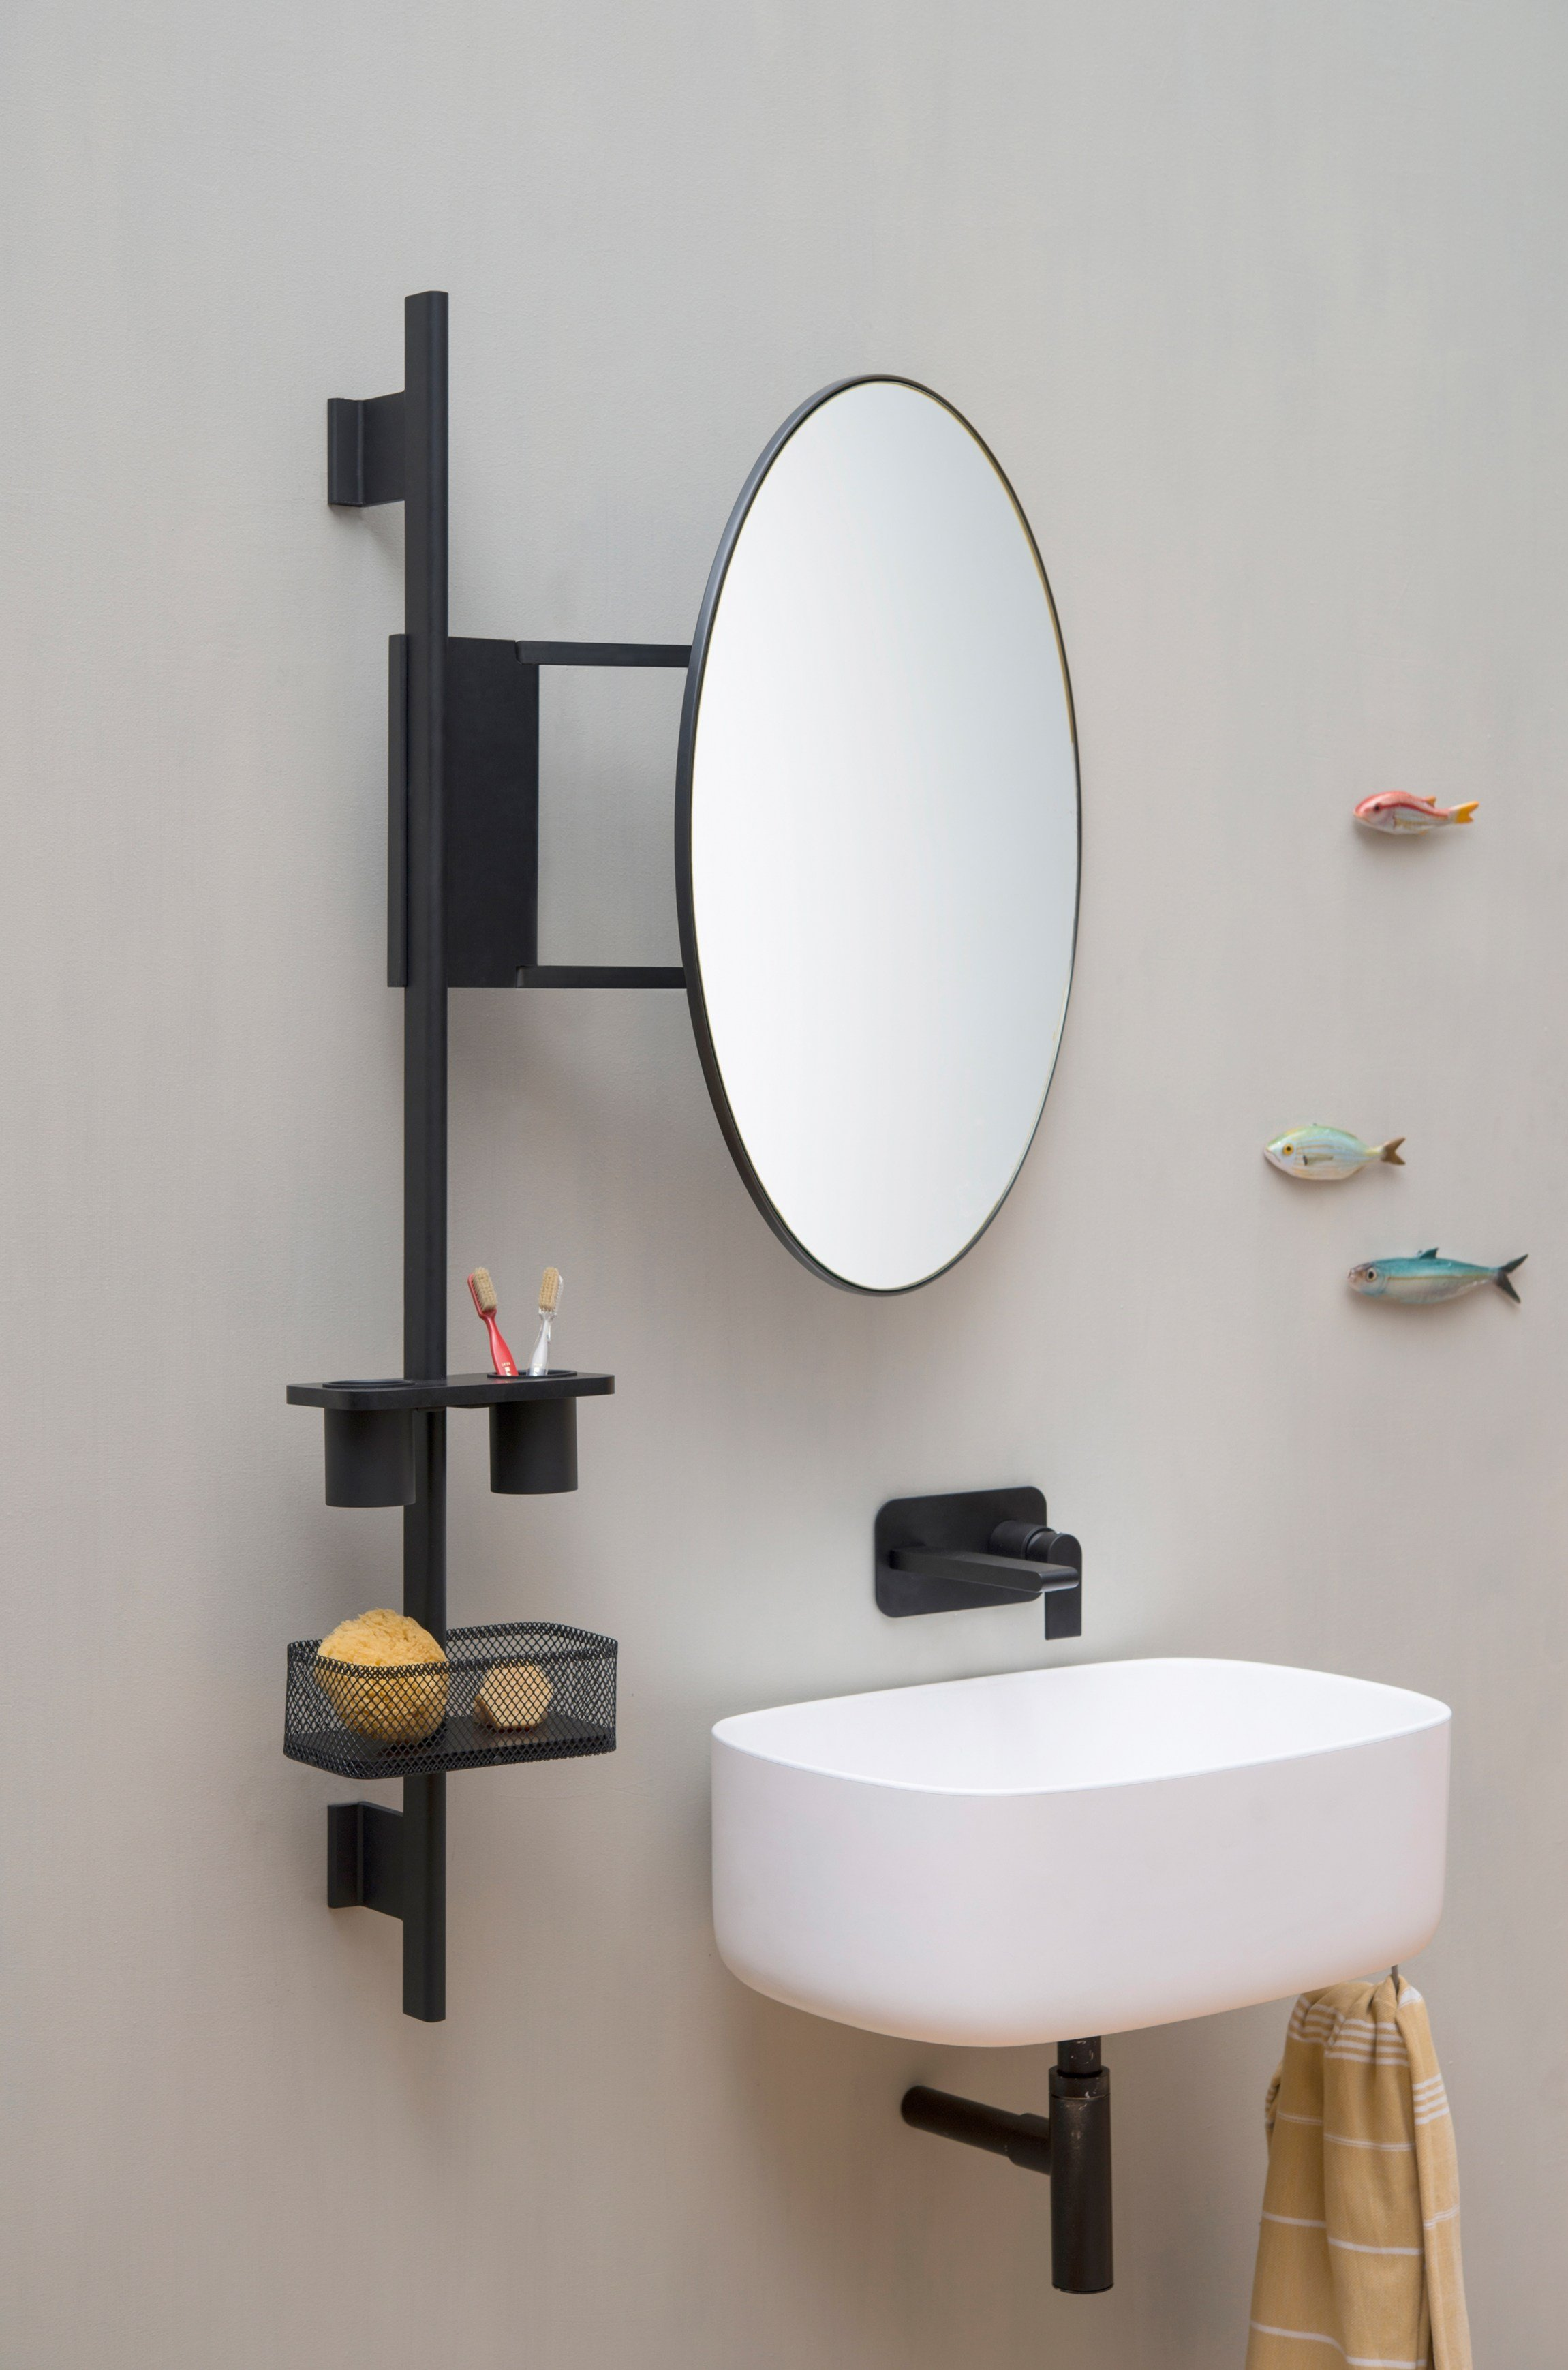 Bathroom wall shelf prop by ever by thermomat saniline design monica graffeo - Etagere mural design ...